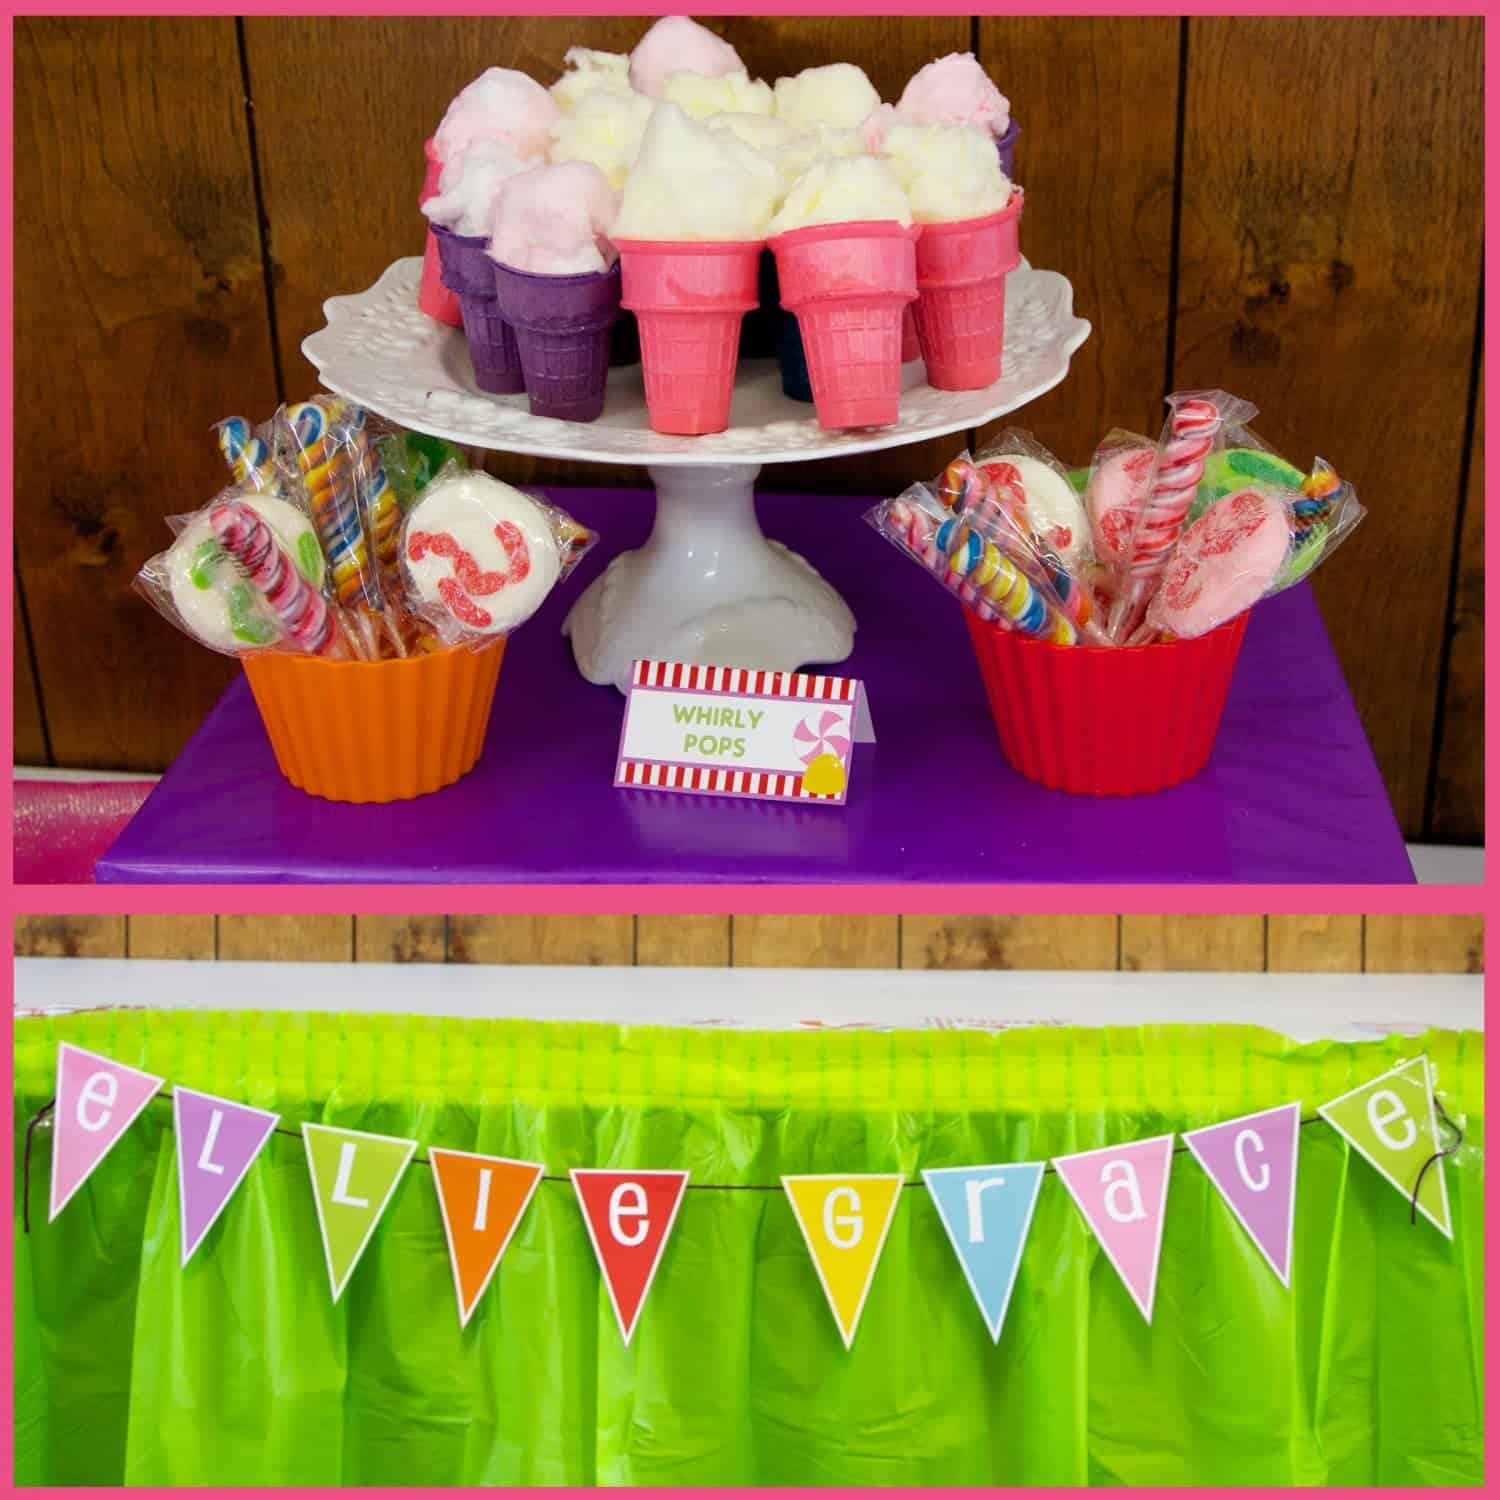 Candyland party ellie and amelia 39 s sweet event mimi 39 s dollhouse - Candyland party table decorations ...